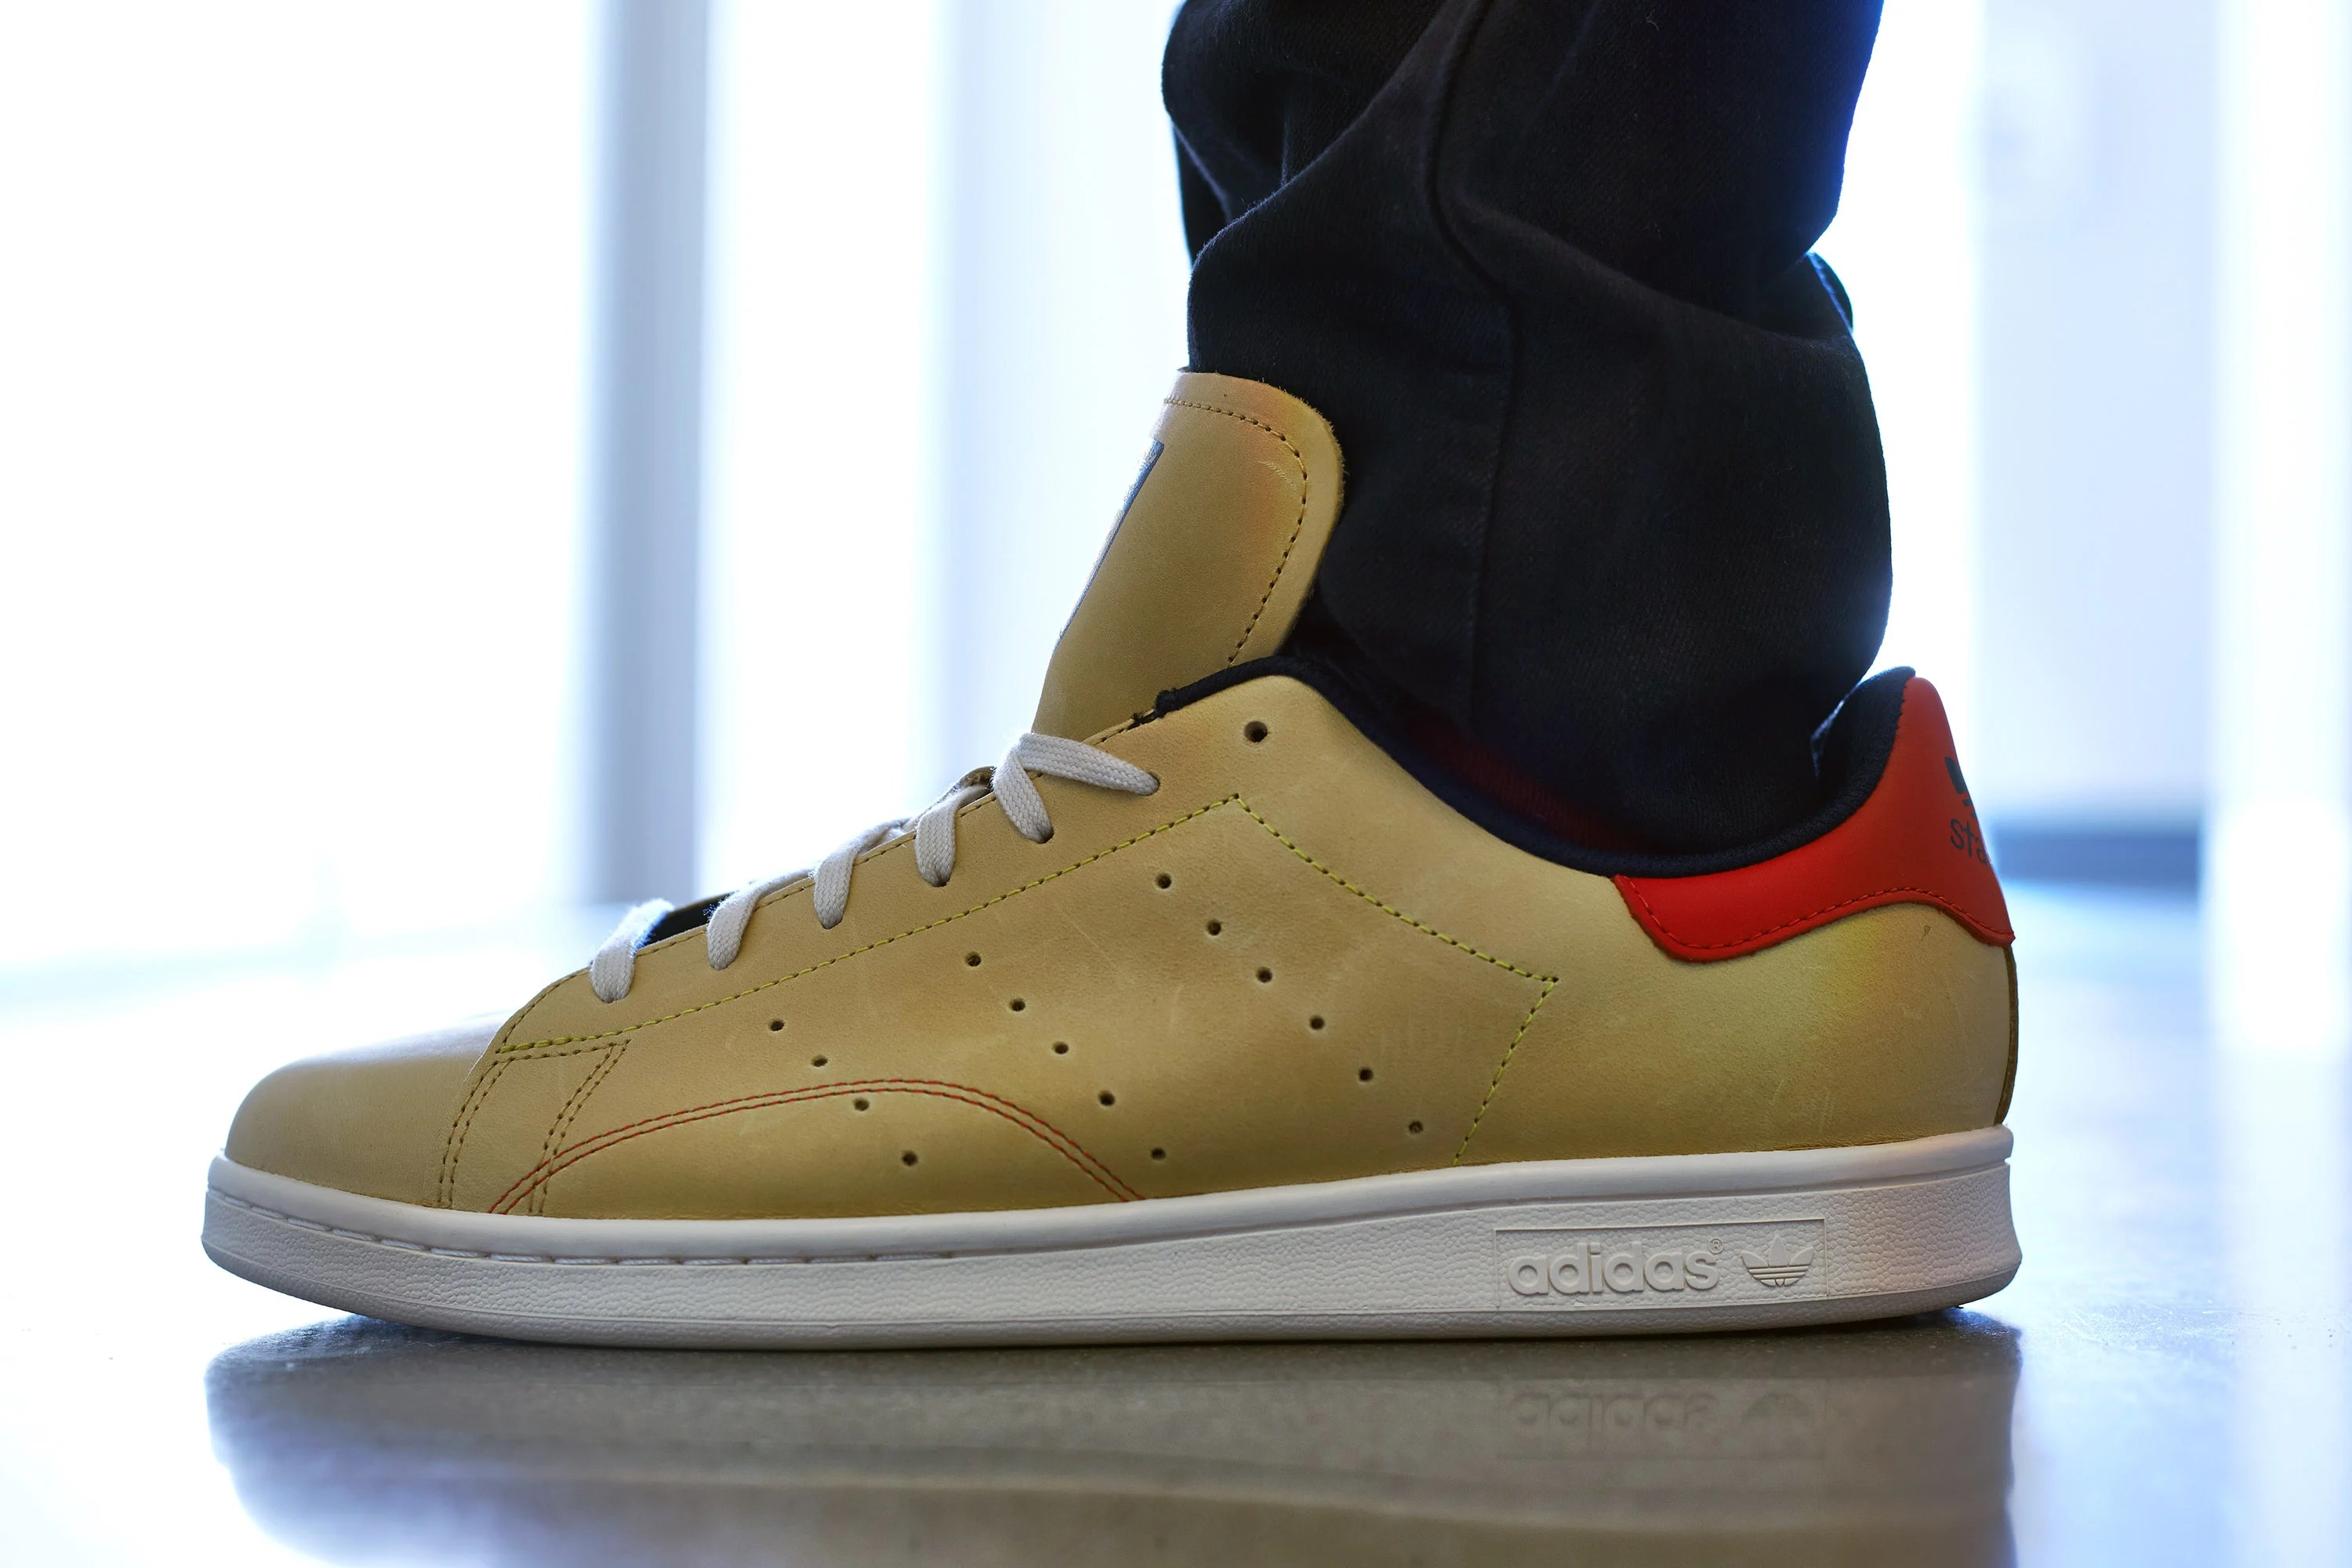 Mark McNairy x la fourness x Adidas Stan Smith Nice kicks